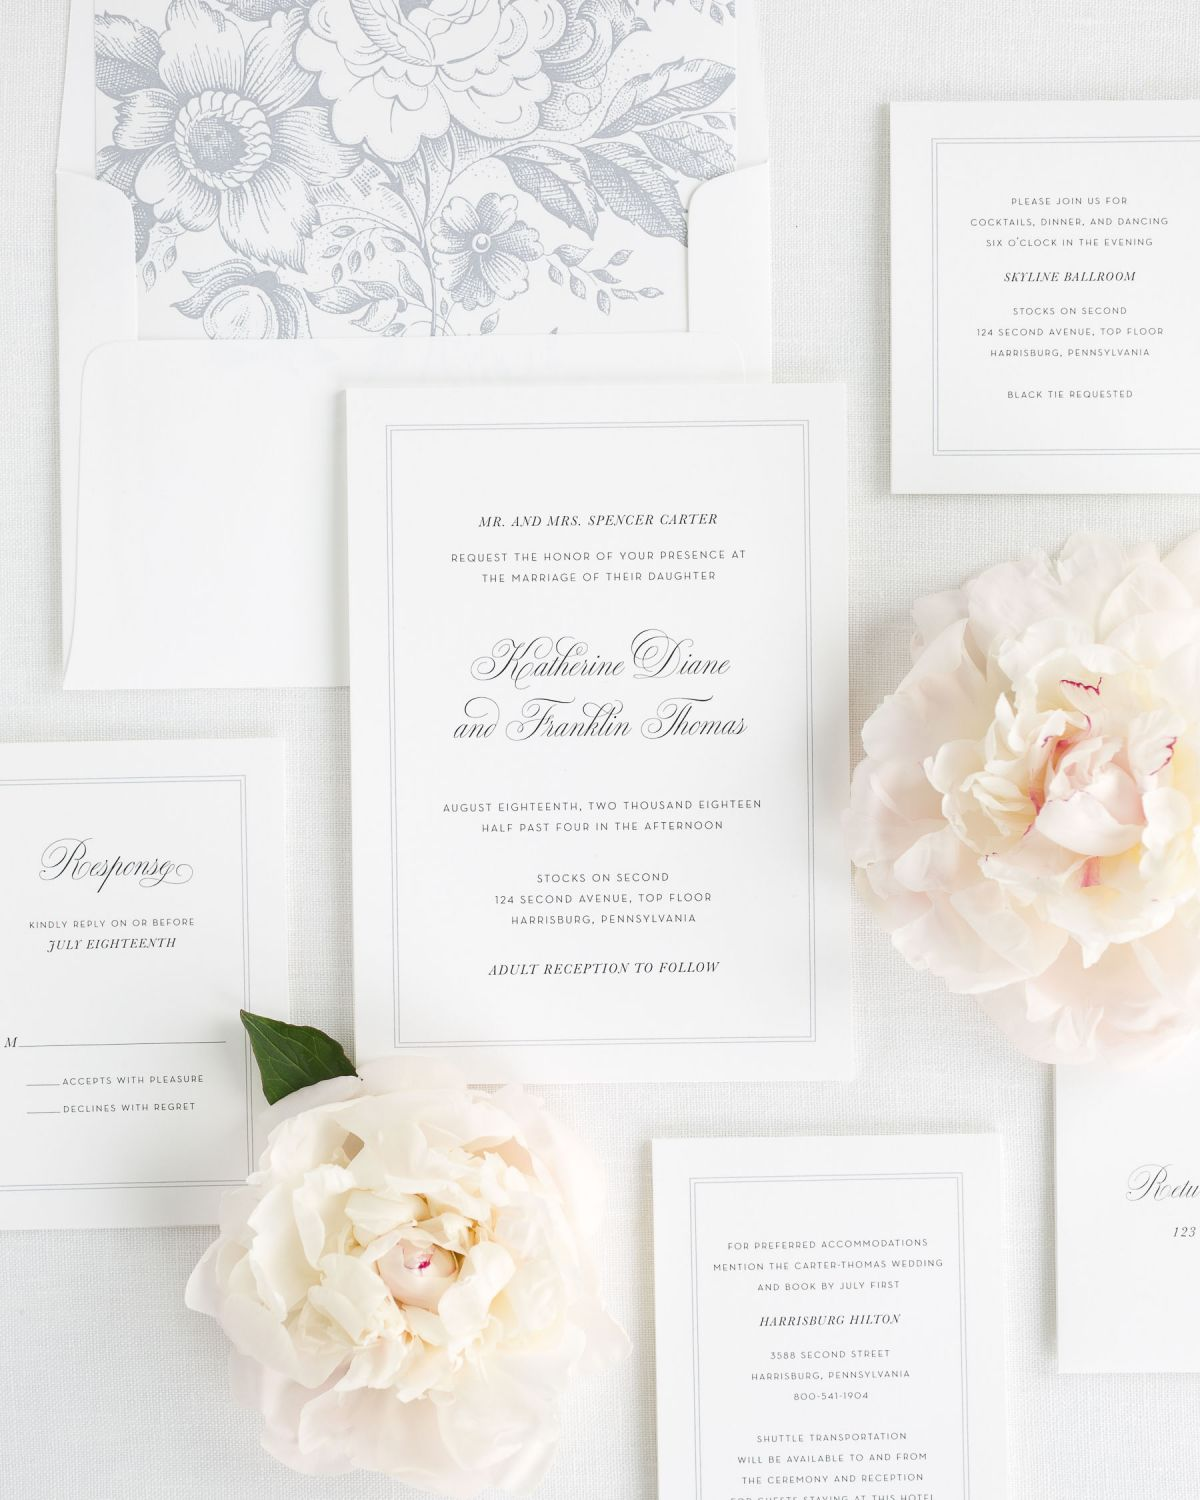 Simply Classic Wedding Invitations - Wedding Invitations by Shine